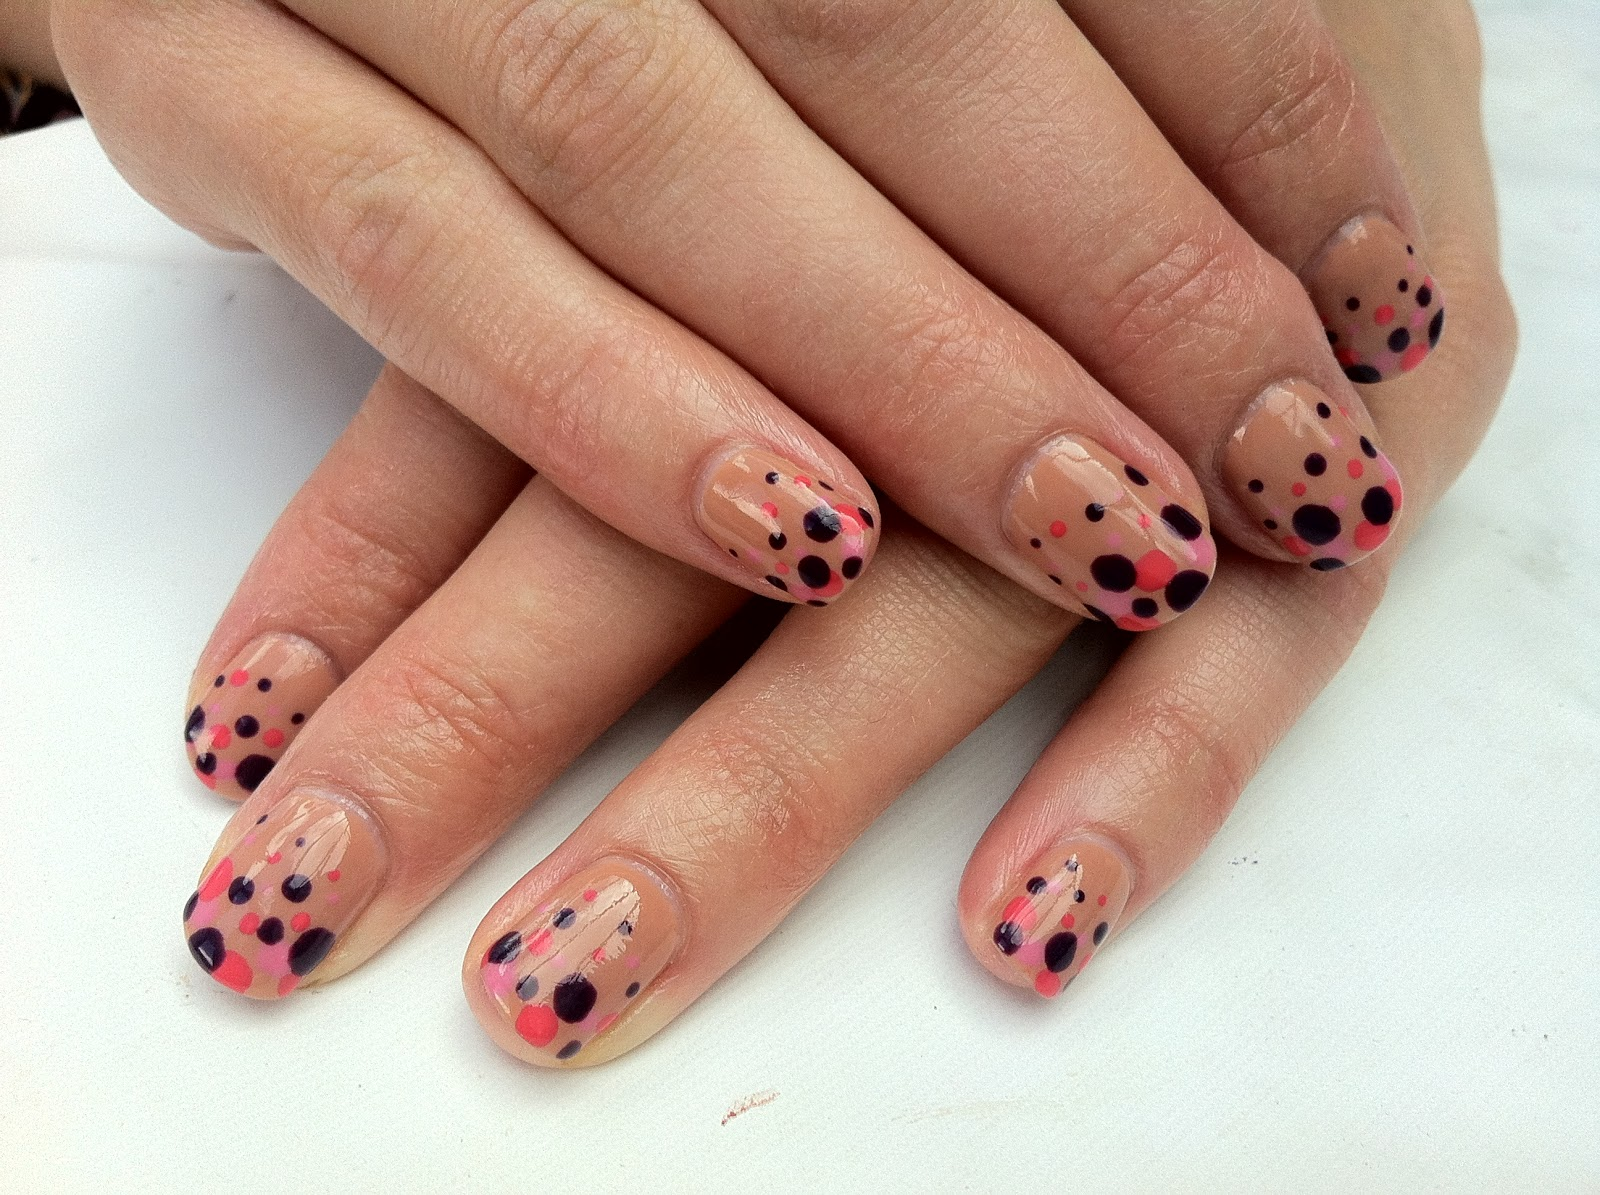 Brush up and Polish up!: CND Shellac Nail Art - Gradient Dots